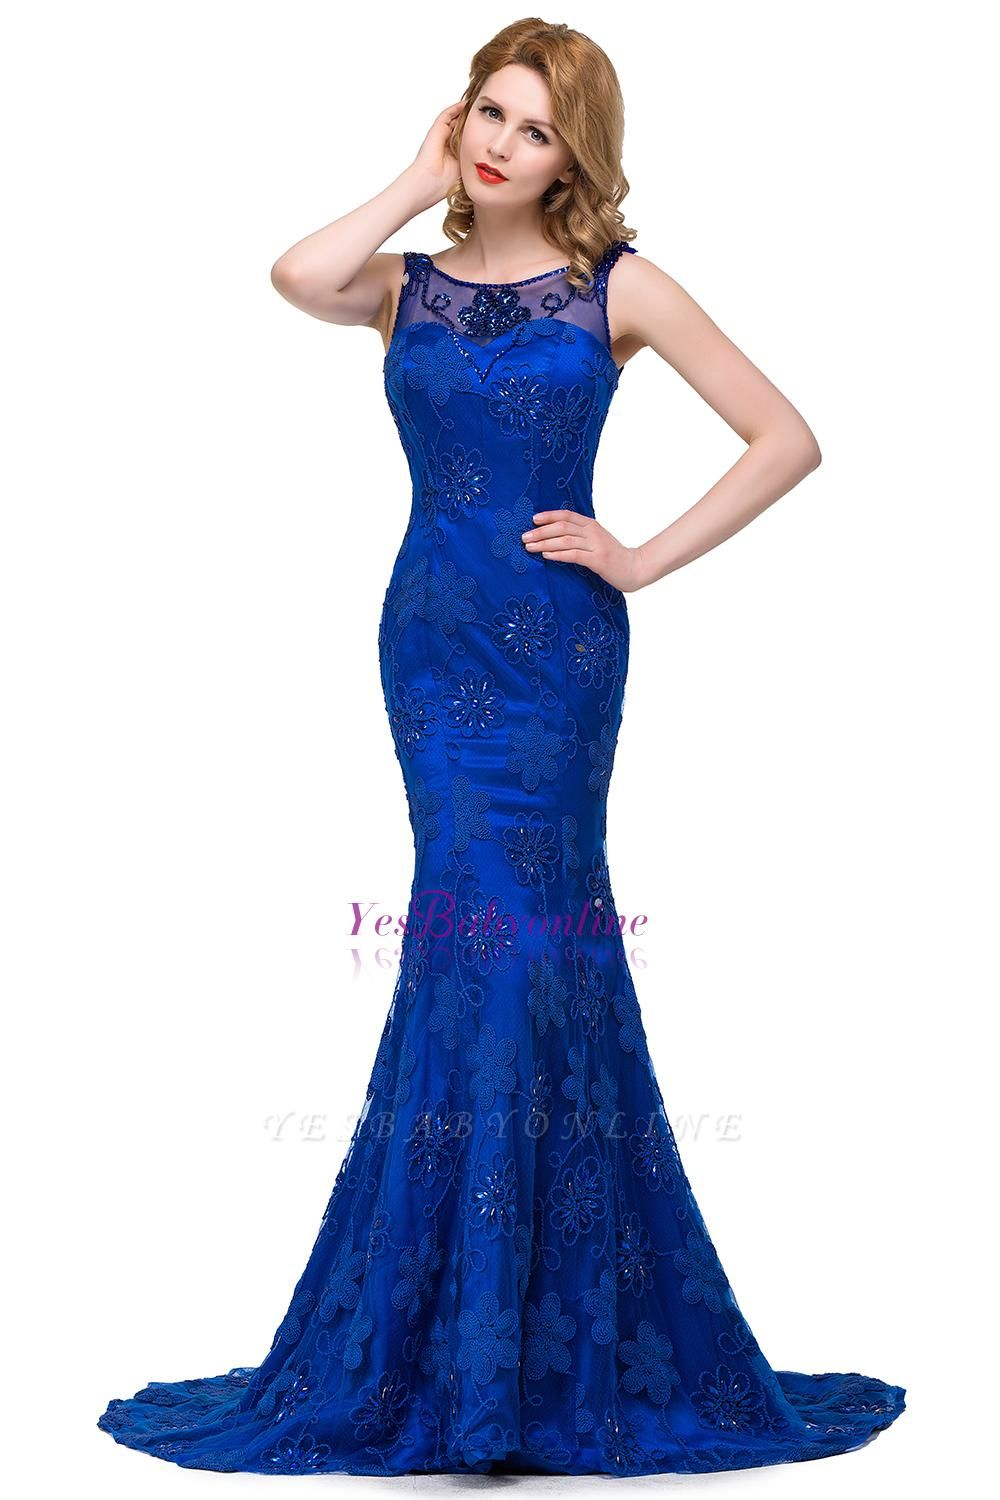 Crystal Mermaid Appliques Sleeveless  Royal-Blue Prom Dress